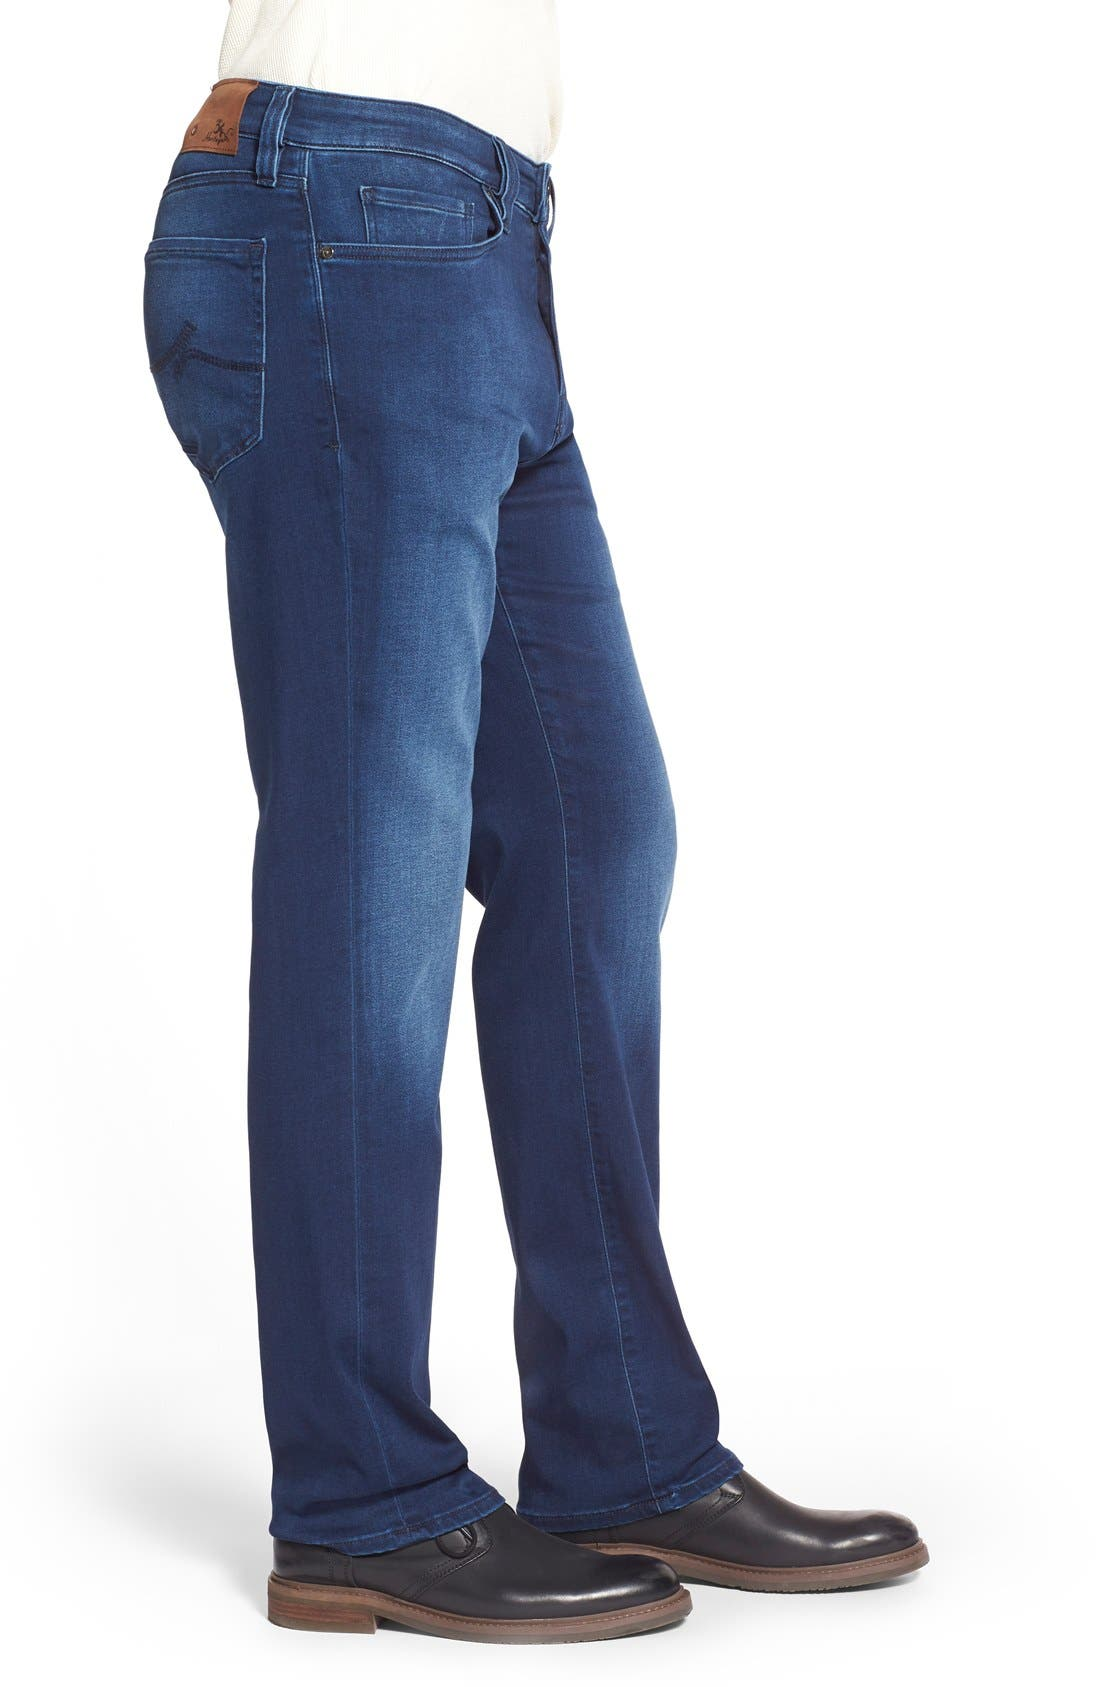 'Charisma' Relaxed Fit Jeans,                             Alternate thumbnail 3, color,                             Select Indigo